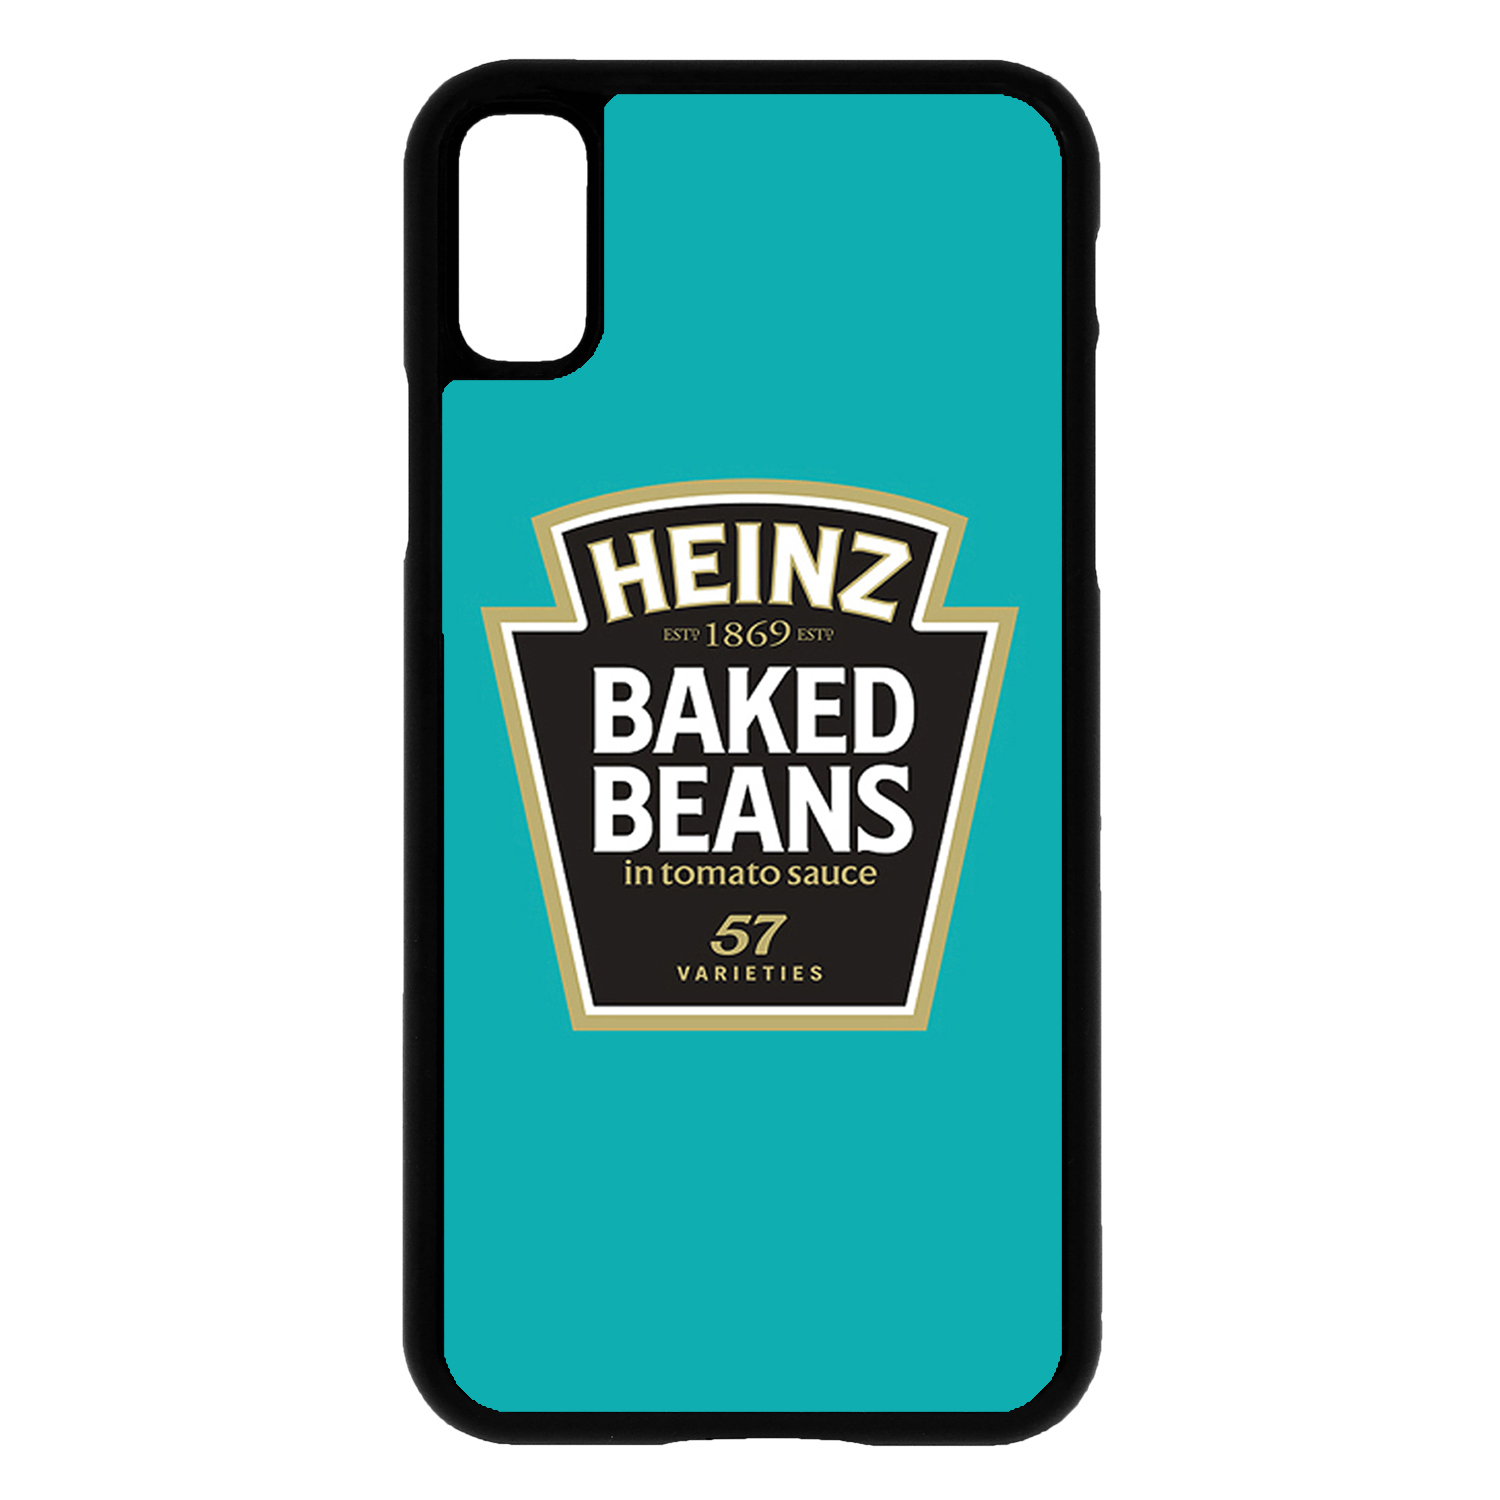 Food Snacks Printed PC Case Cover - Heinz Baked Beans - S-G1007   eBay